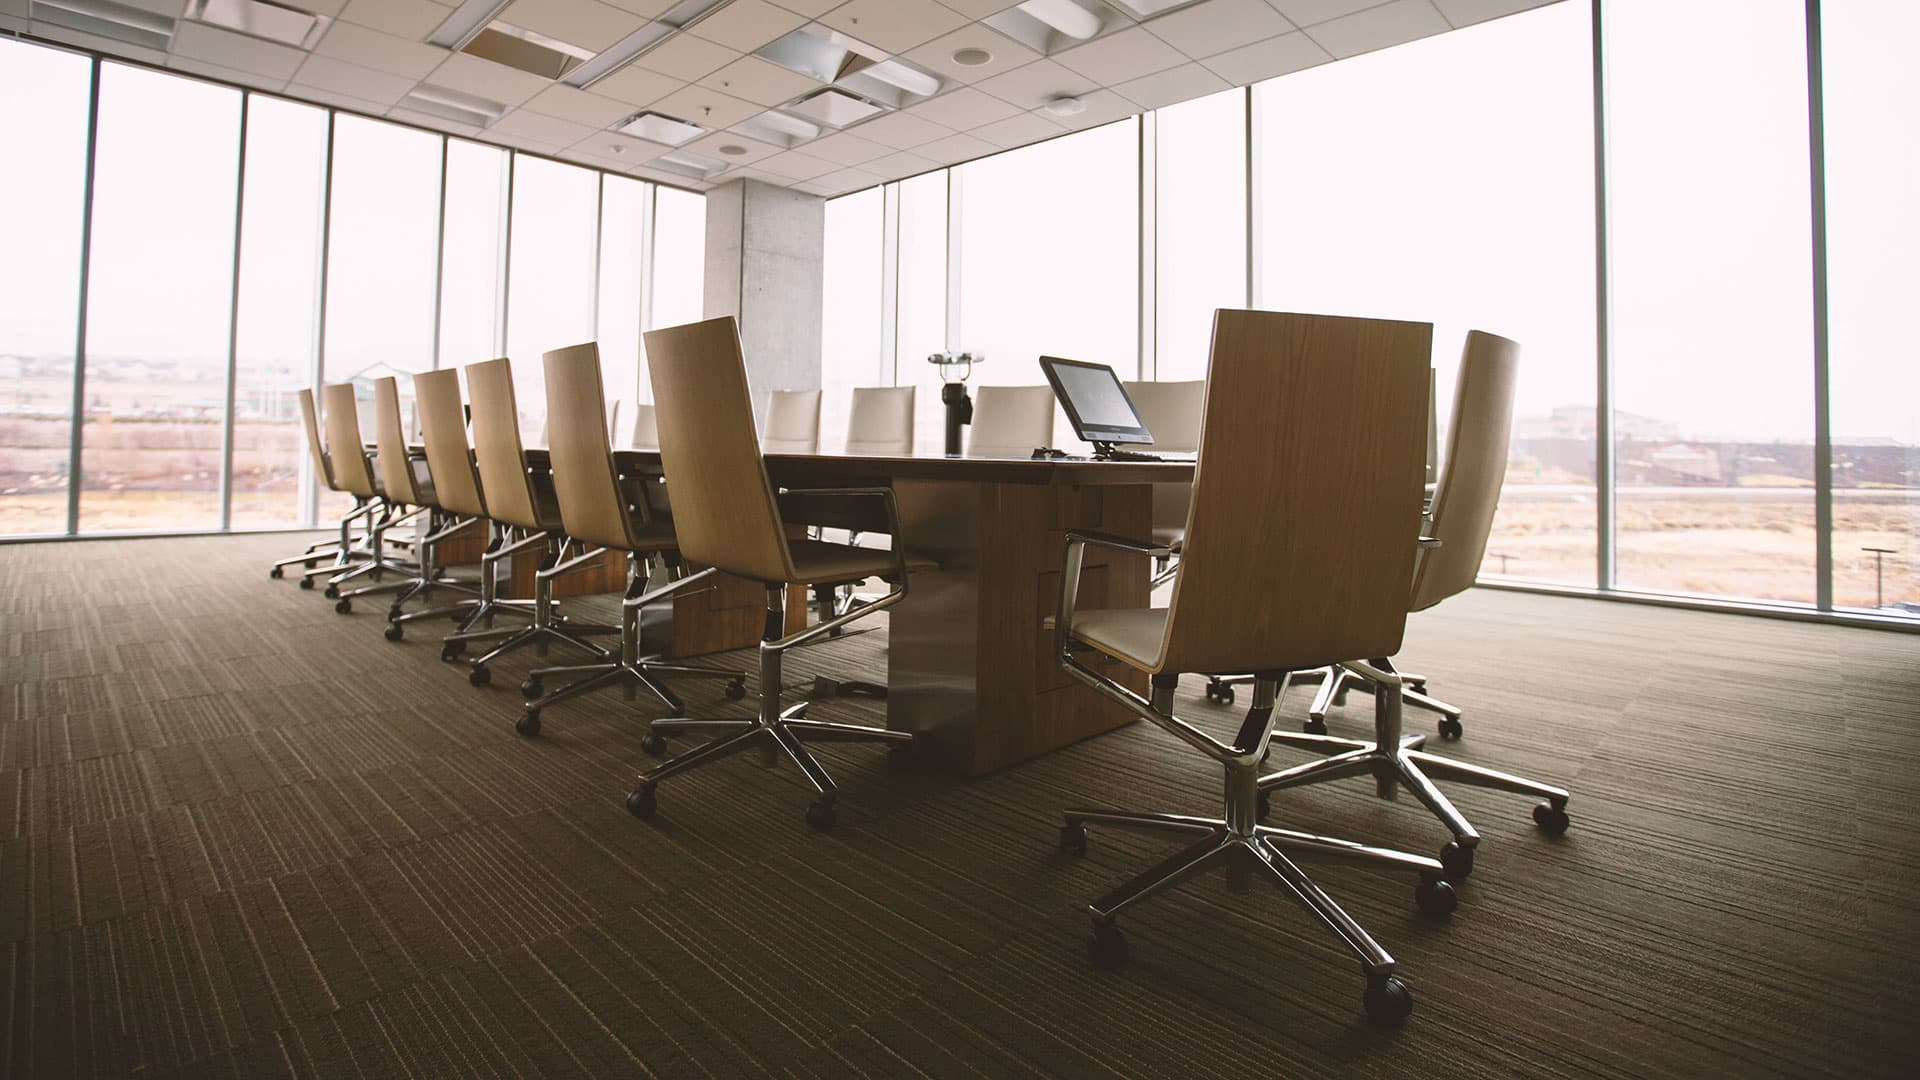 Commercial Flooring Services - Installation, Preparation, and Safety